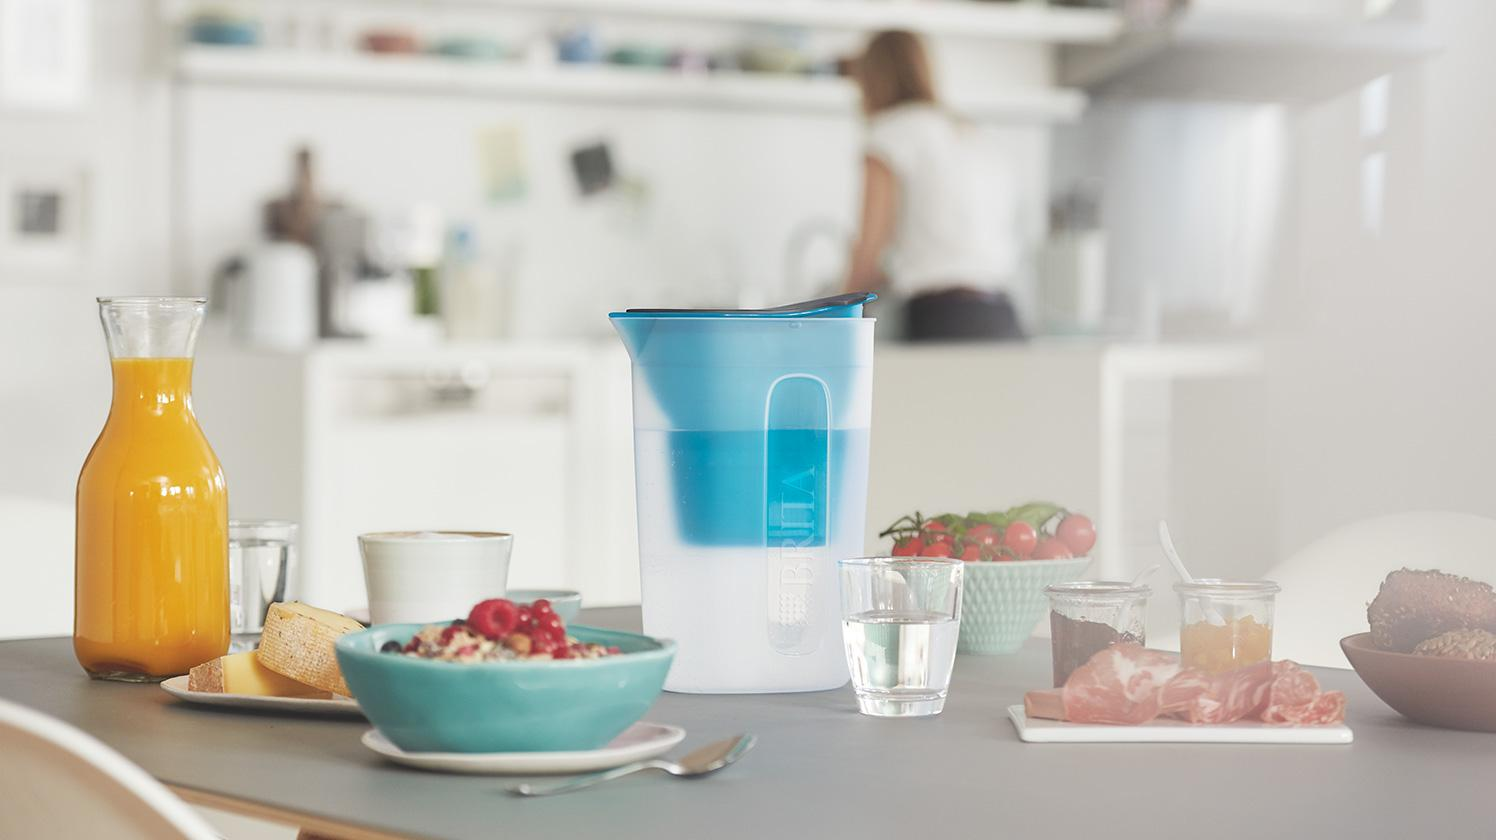 BRITA fill&enjoy Fun pink kitchen breakfast